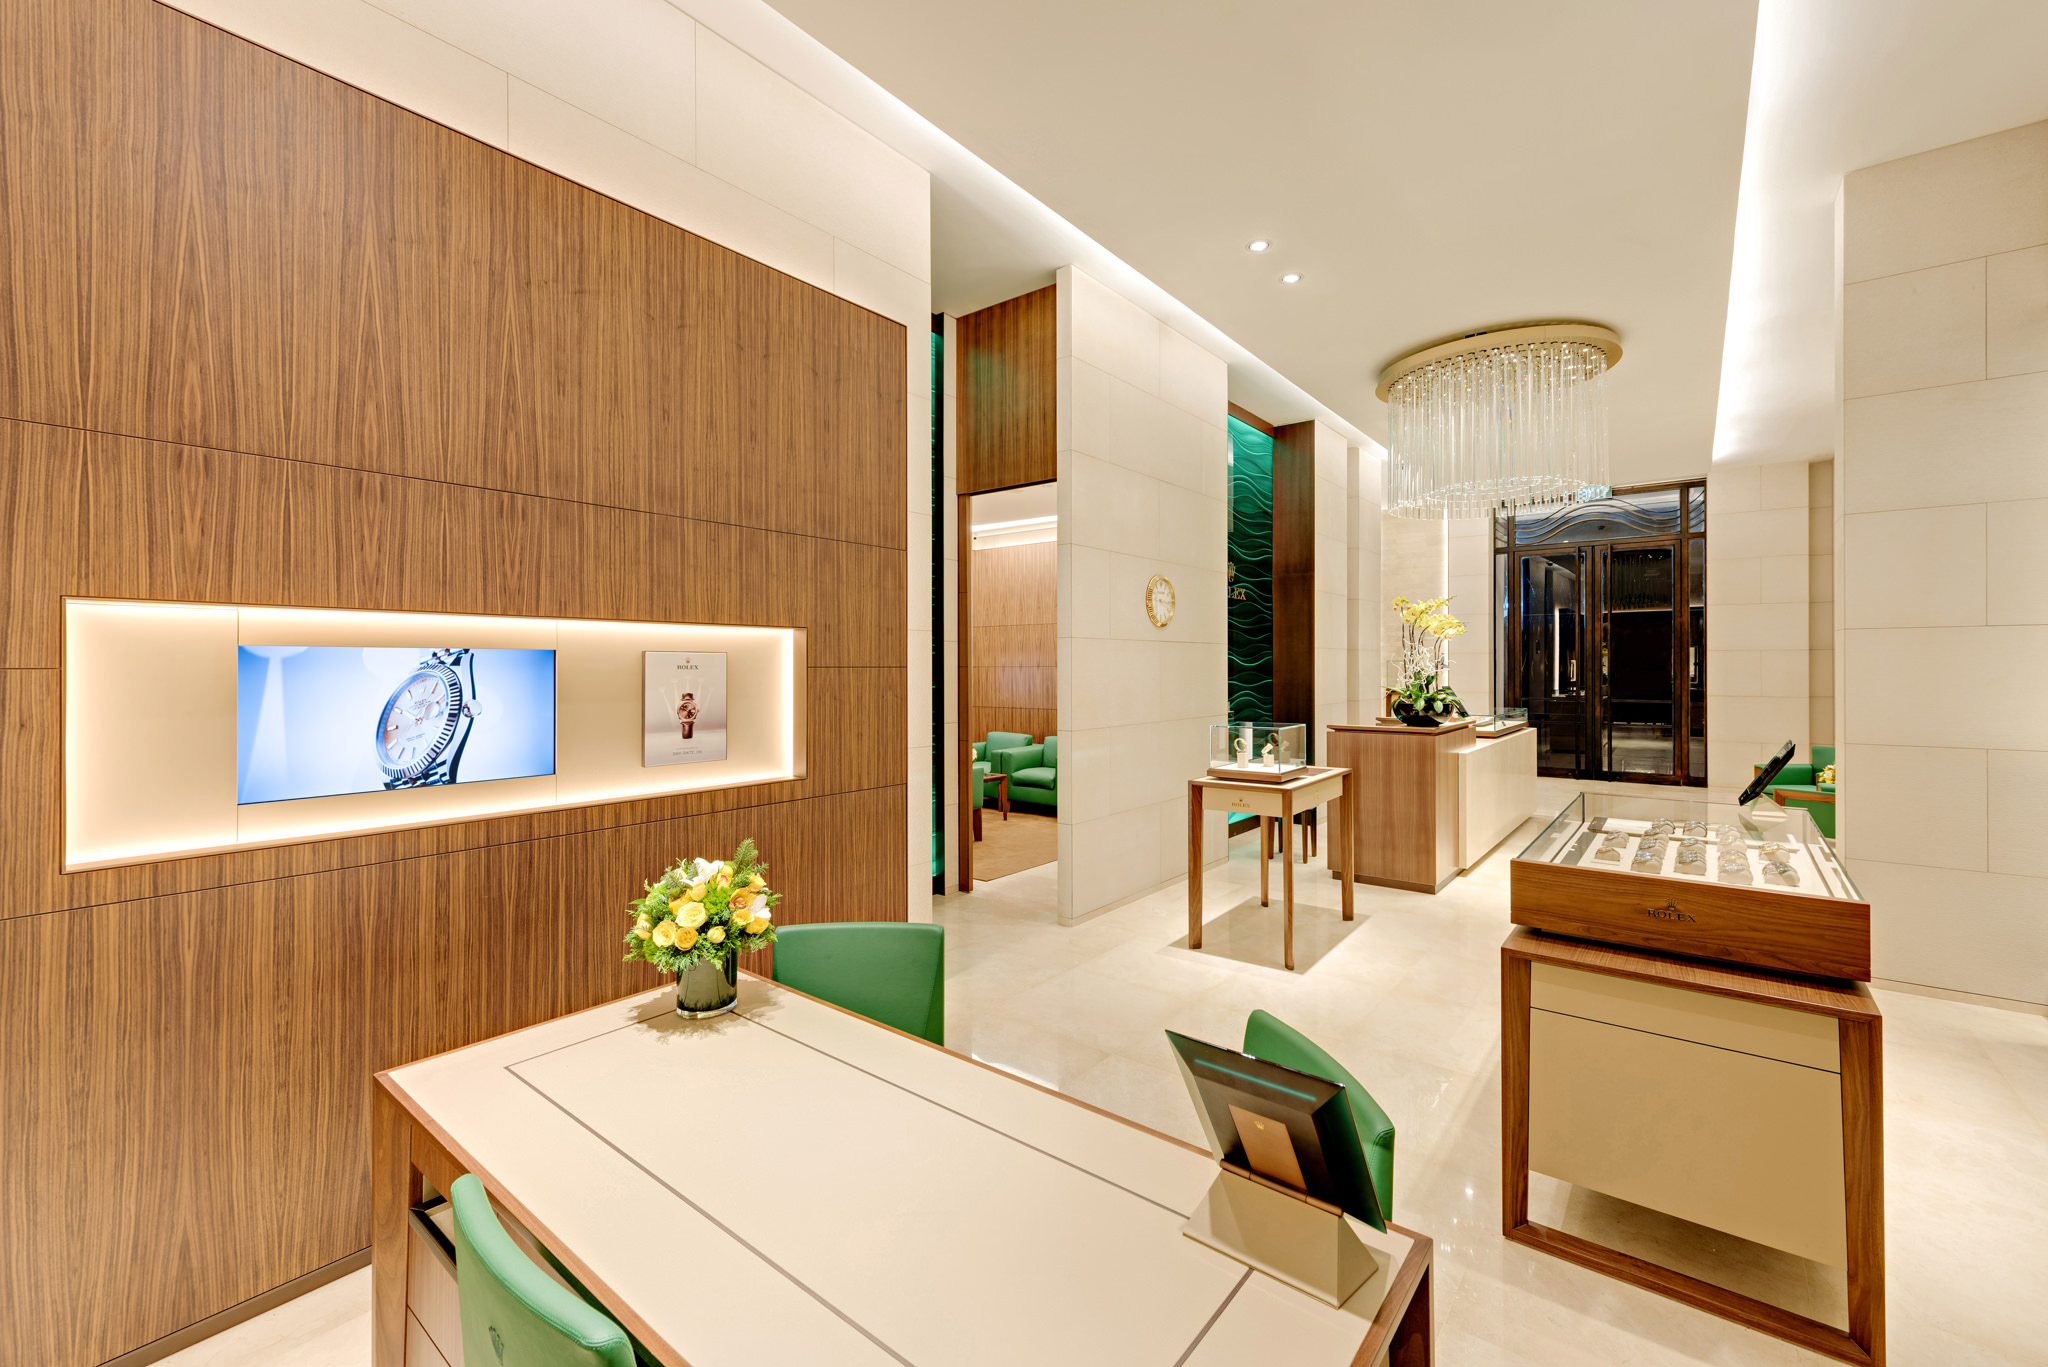 20161224 - Rolex - HCM - Commercial - Interior - Store - Retouch 0004.jpg